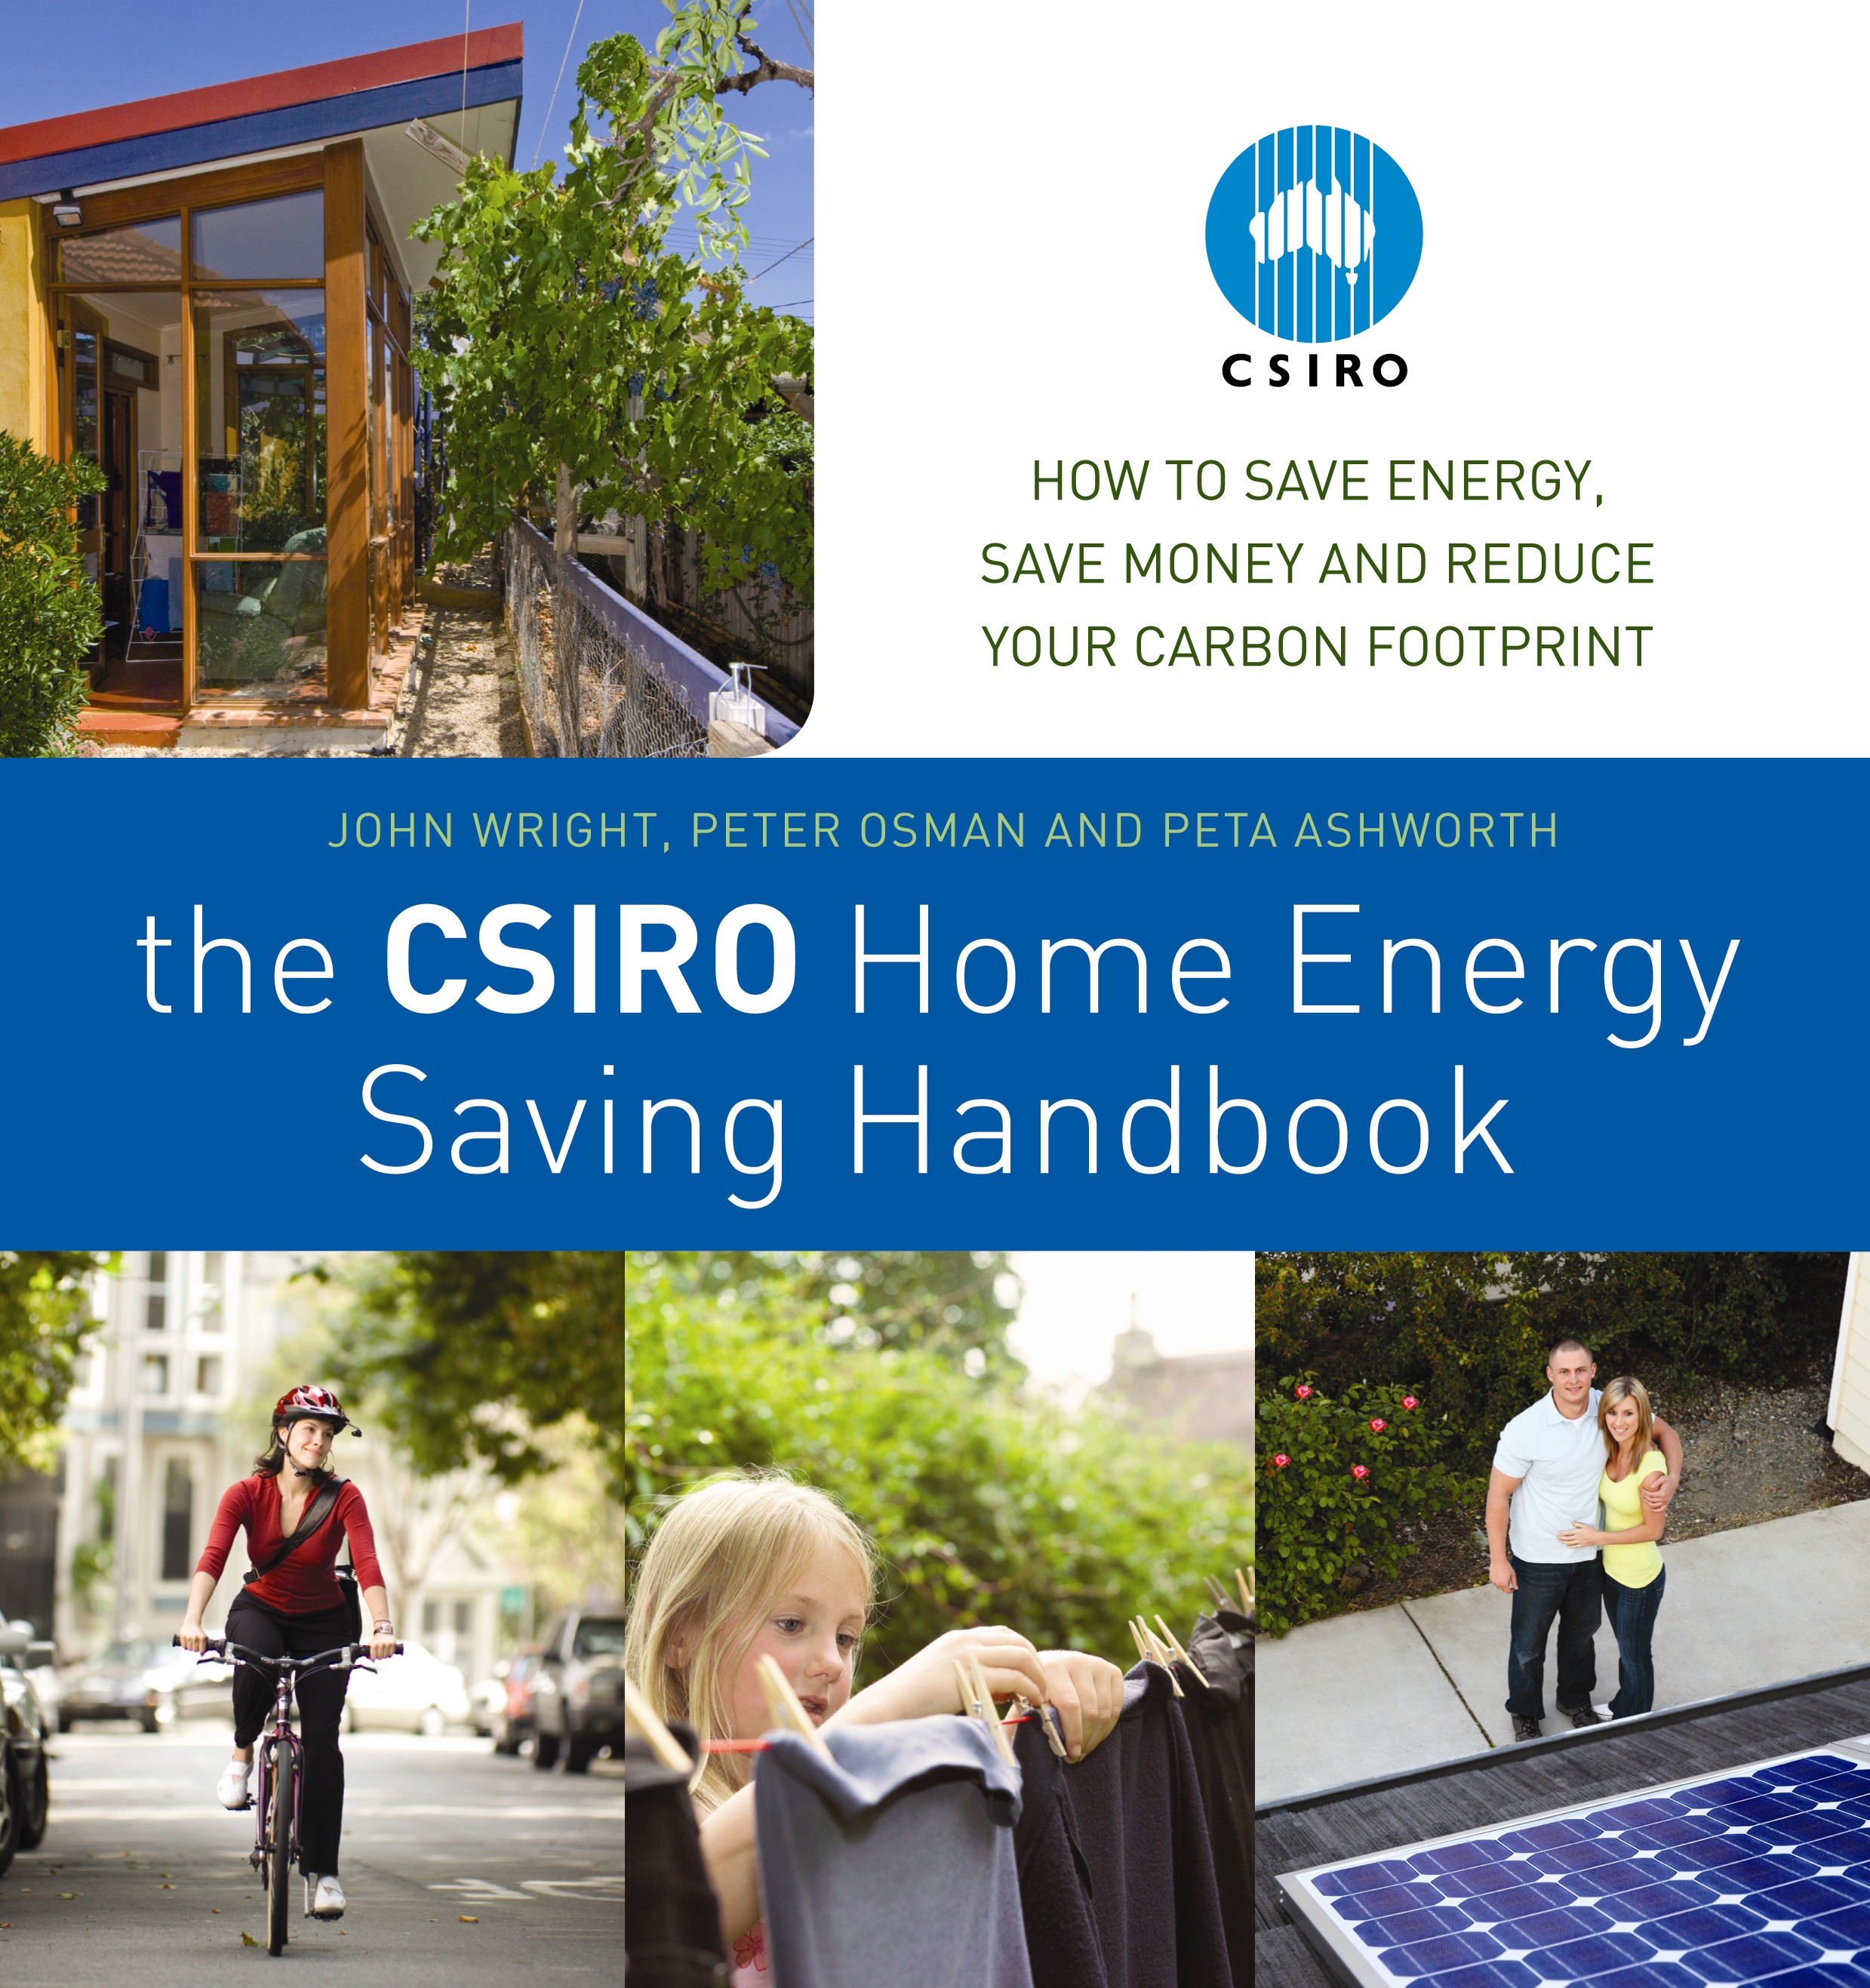 Cover of the CSIRO Energy Saving Handbook by John Wright, Peter Osman, and Peta Ashworth.